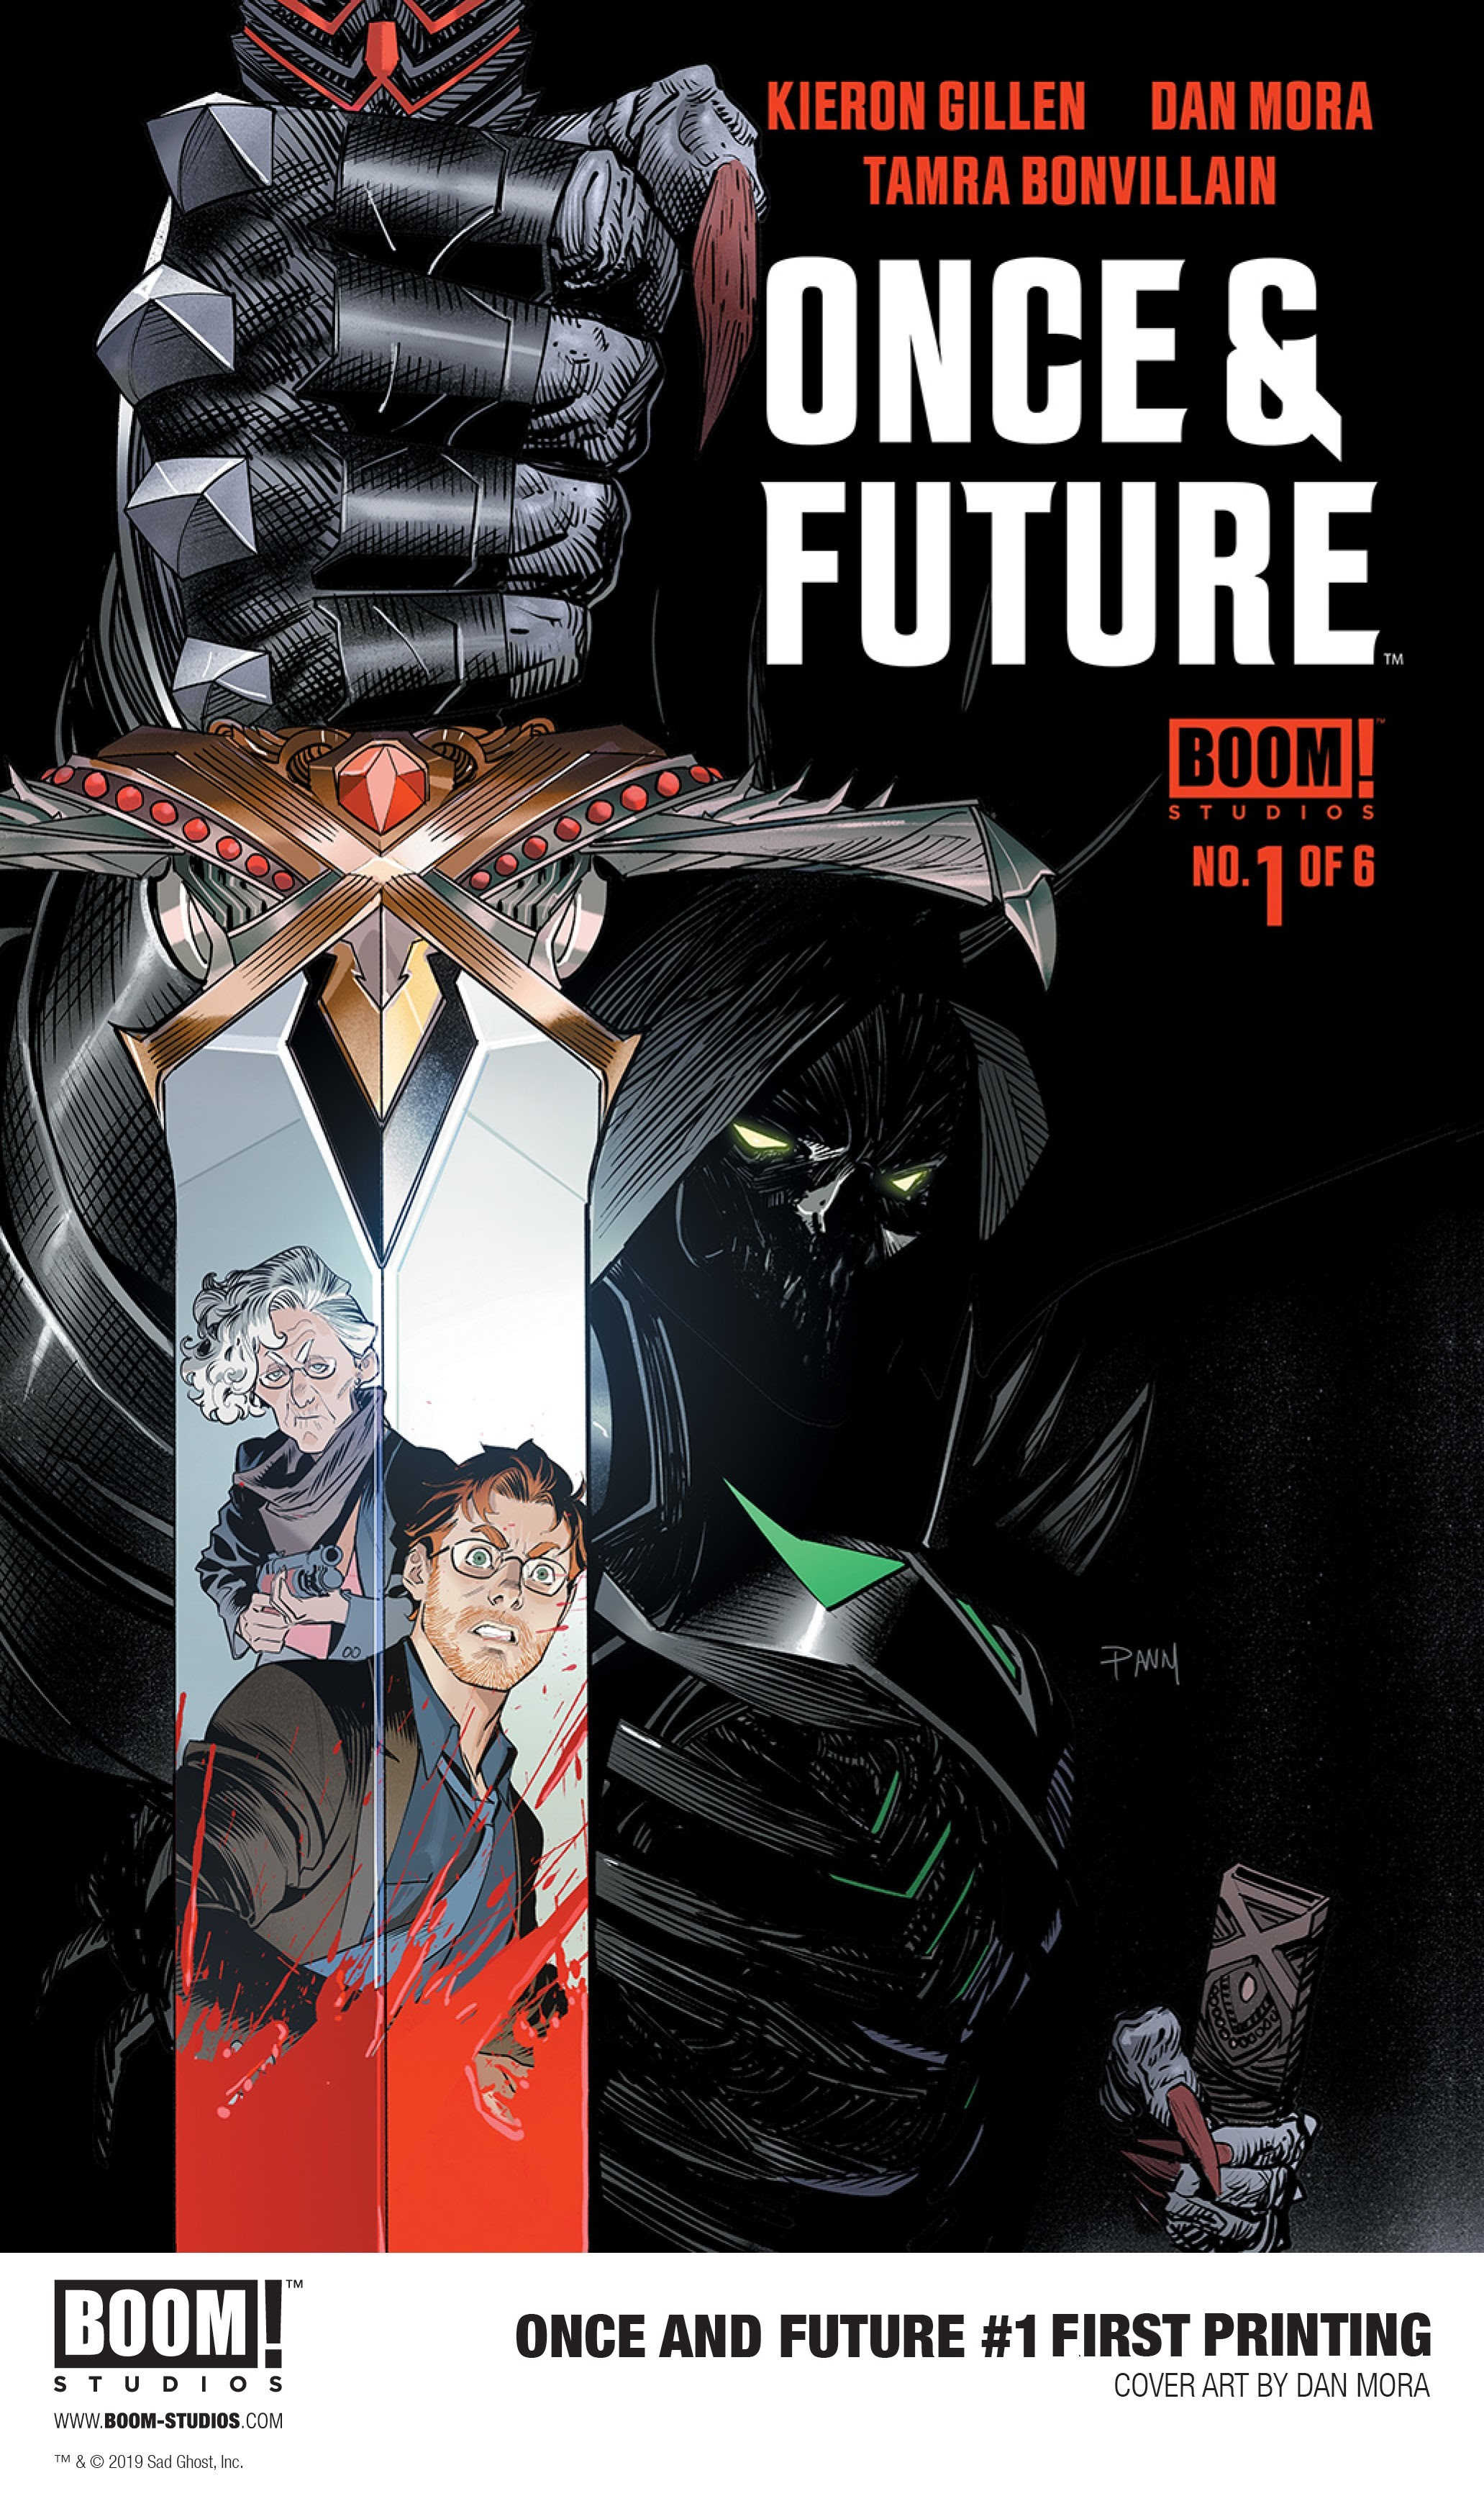 Once & Future #1 first printing